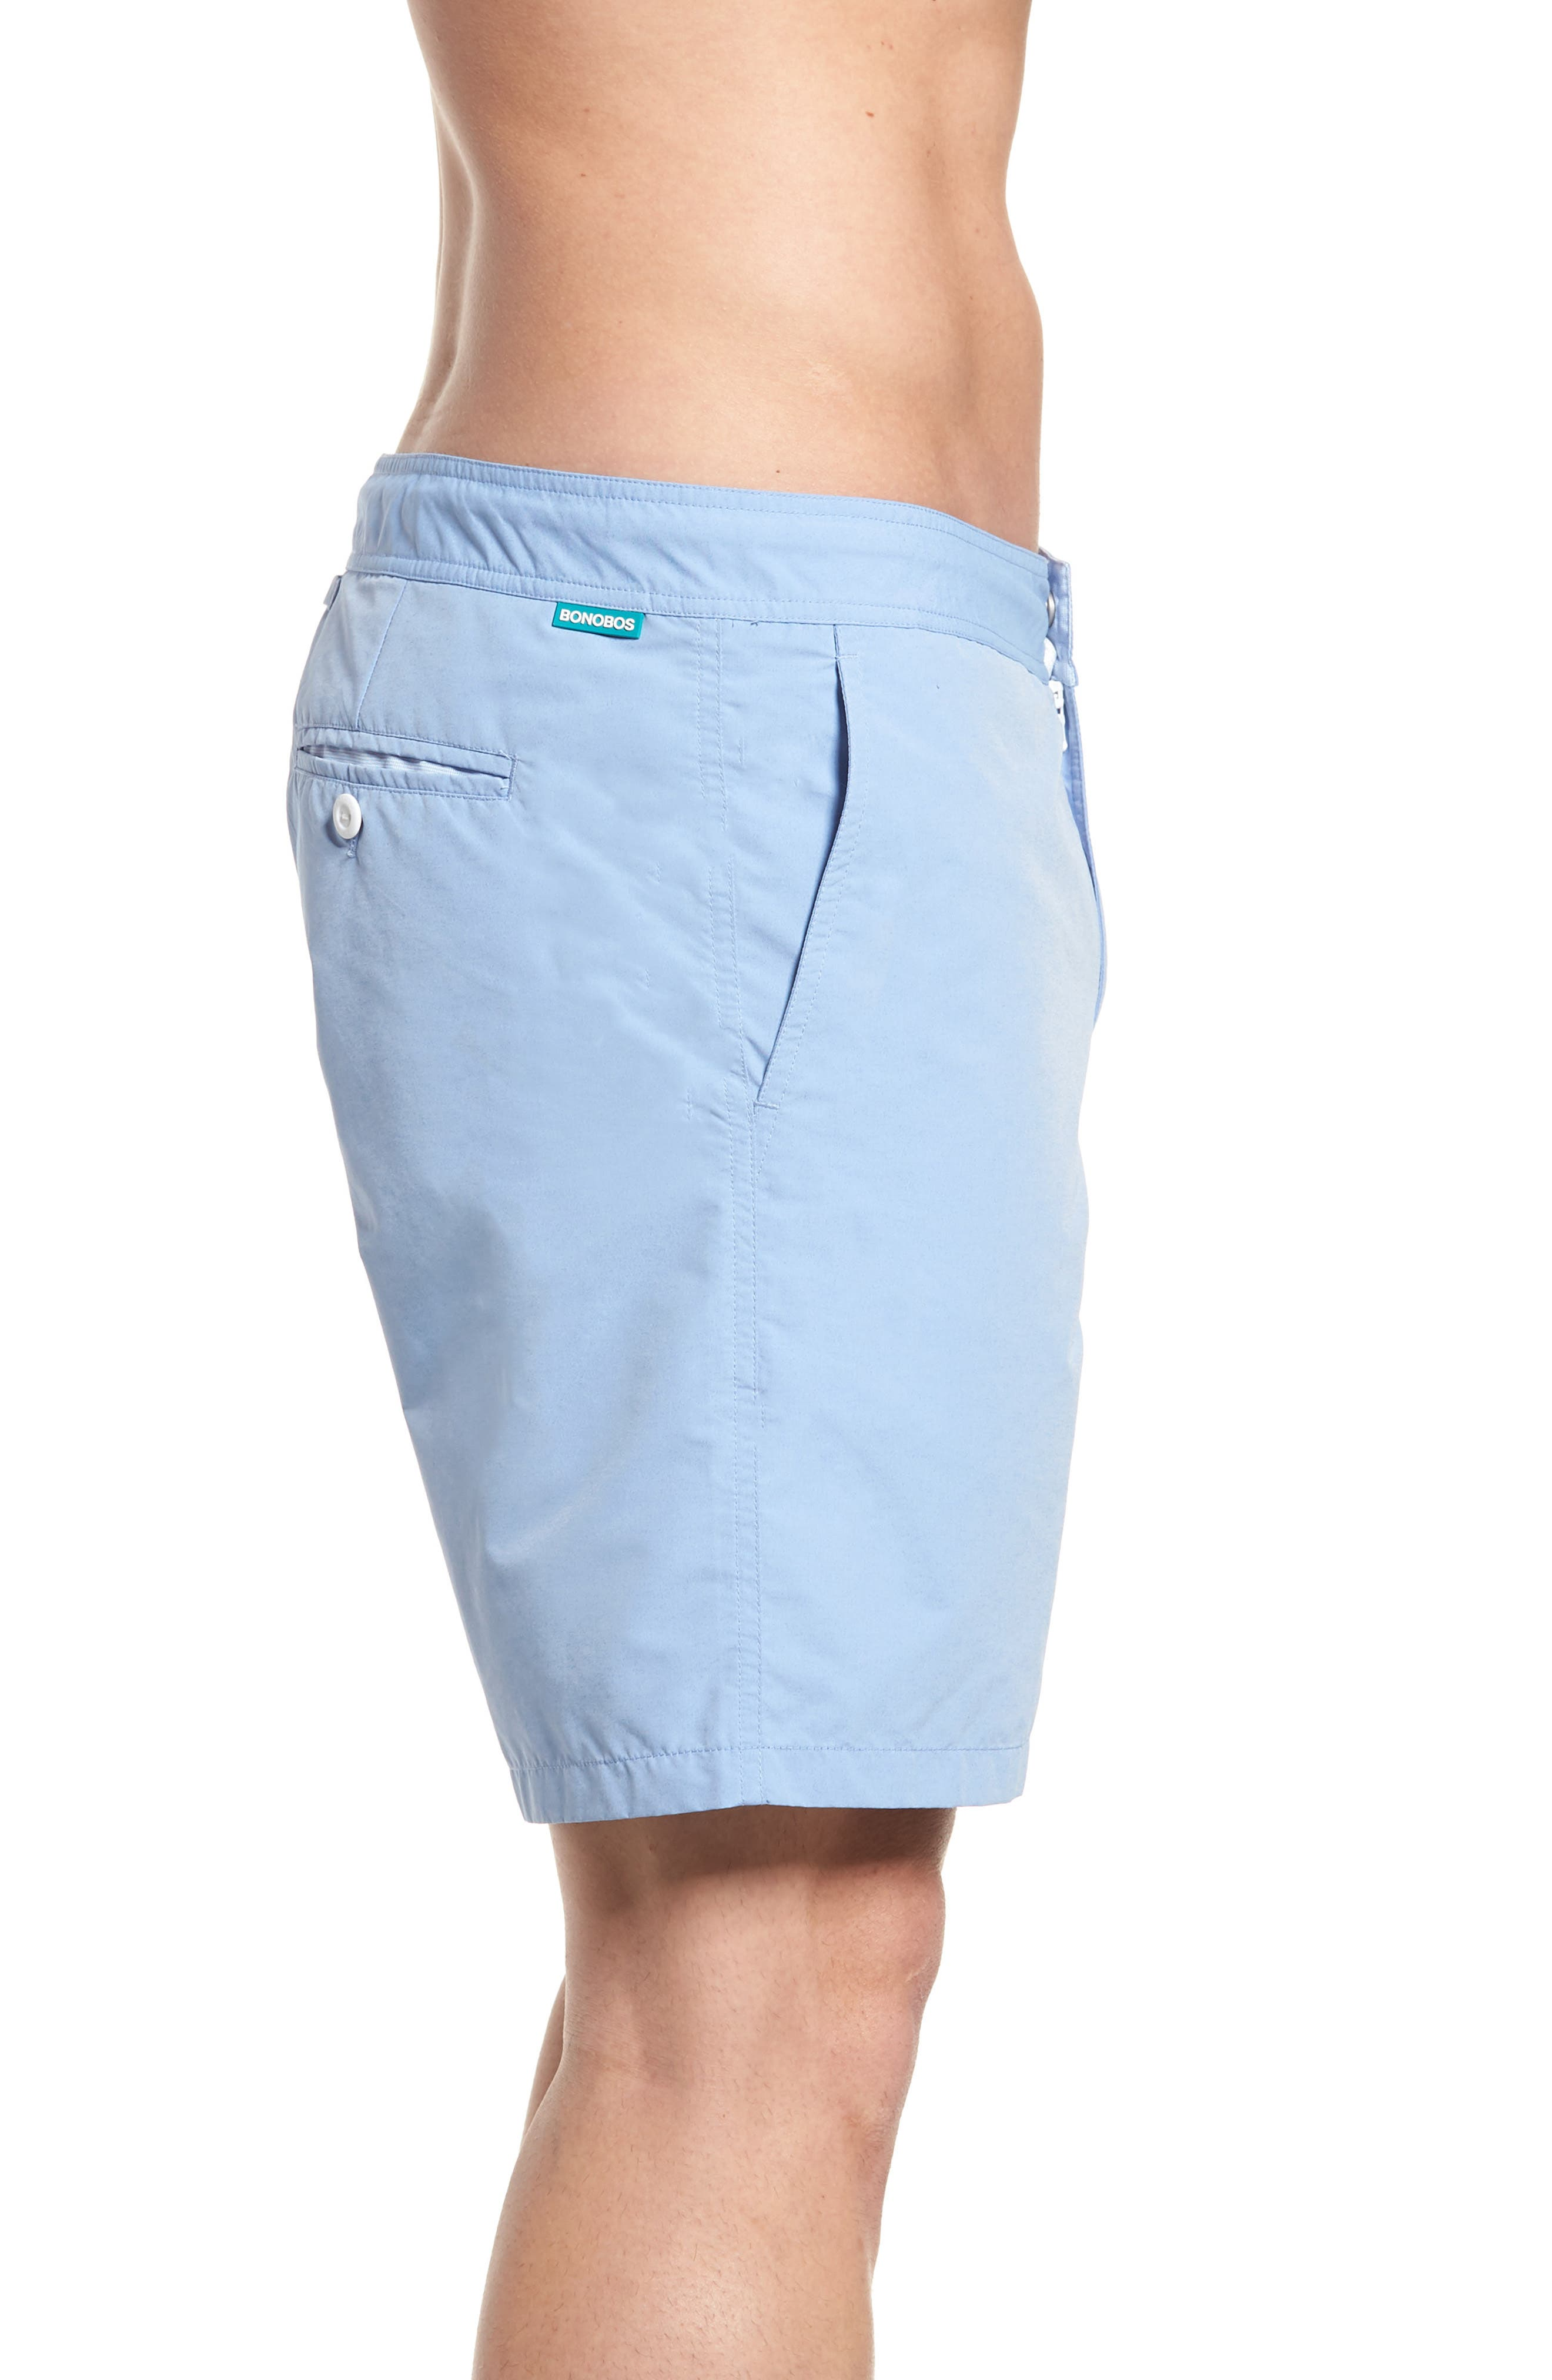 Solid 7-Inch Swim Trunks,                             Alternate thumbnail 3, color,                             Blue Chambray